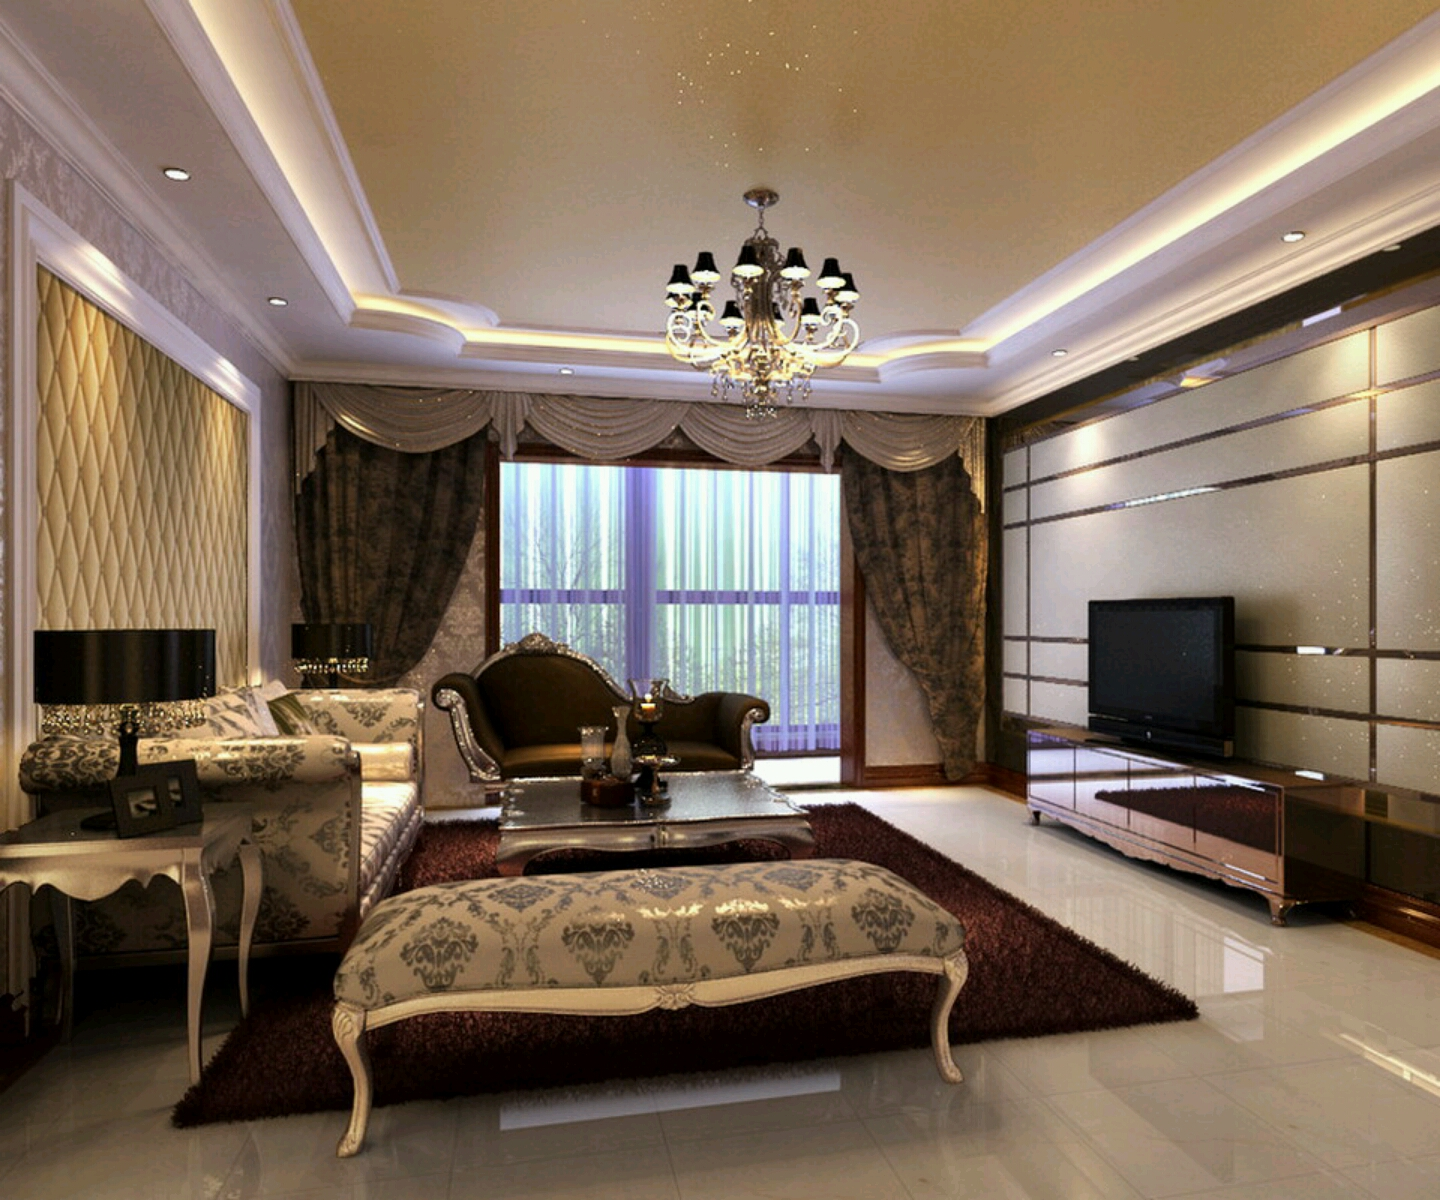 Interior decorating ideas living rooms dream house for Living room interior ideas